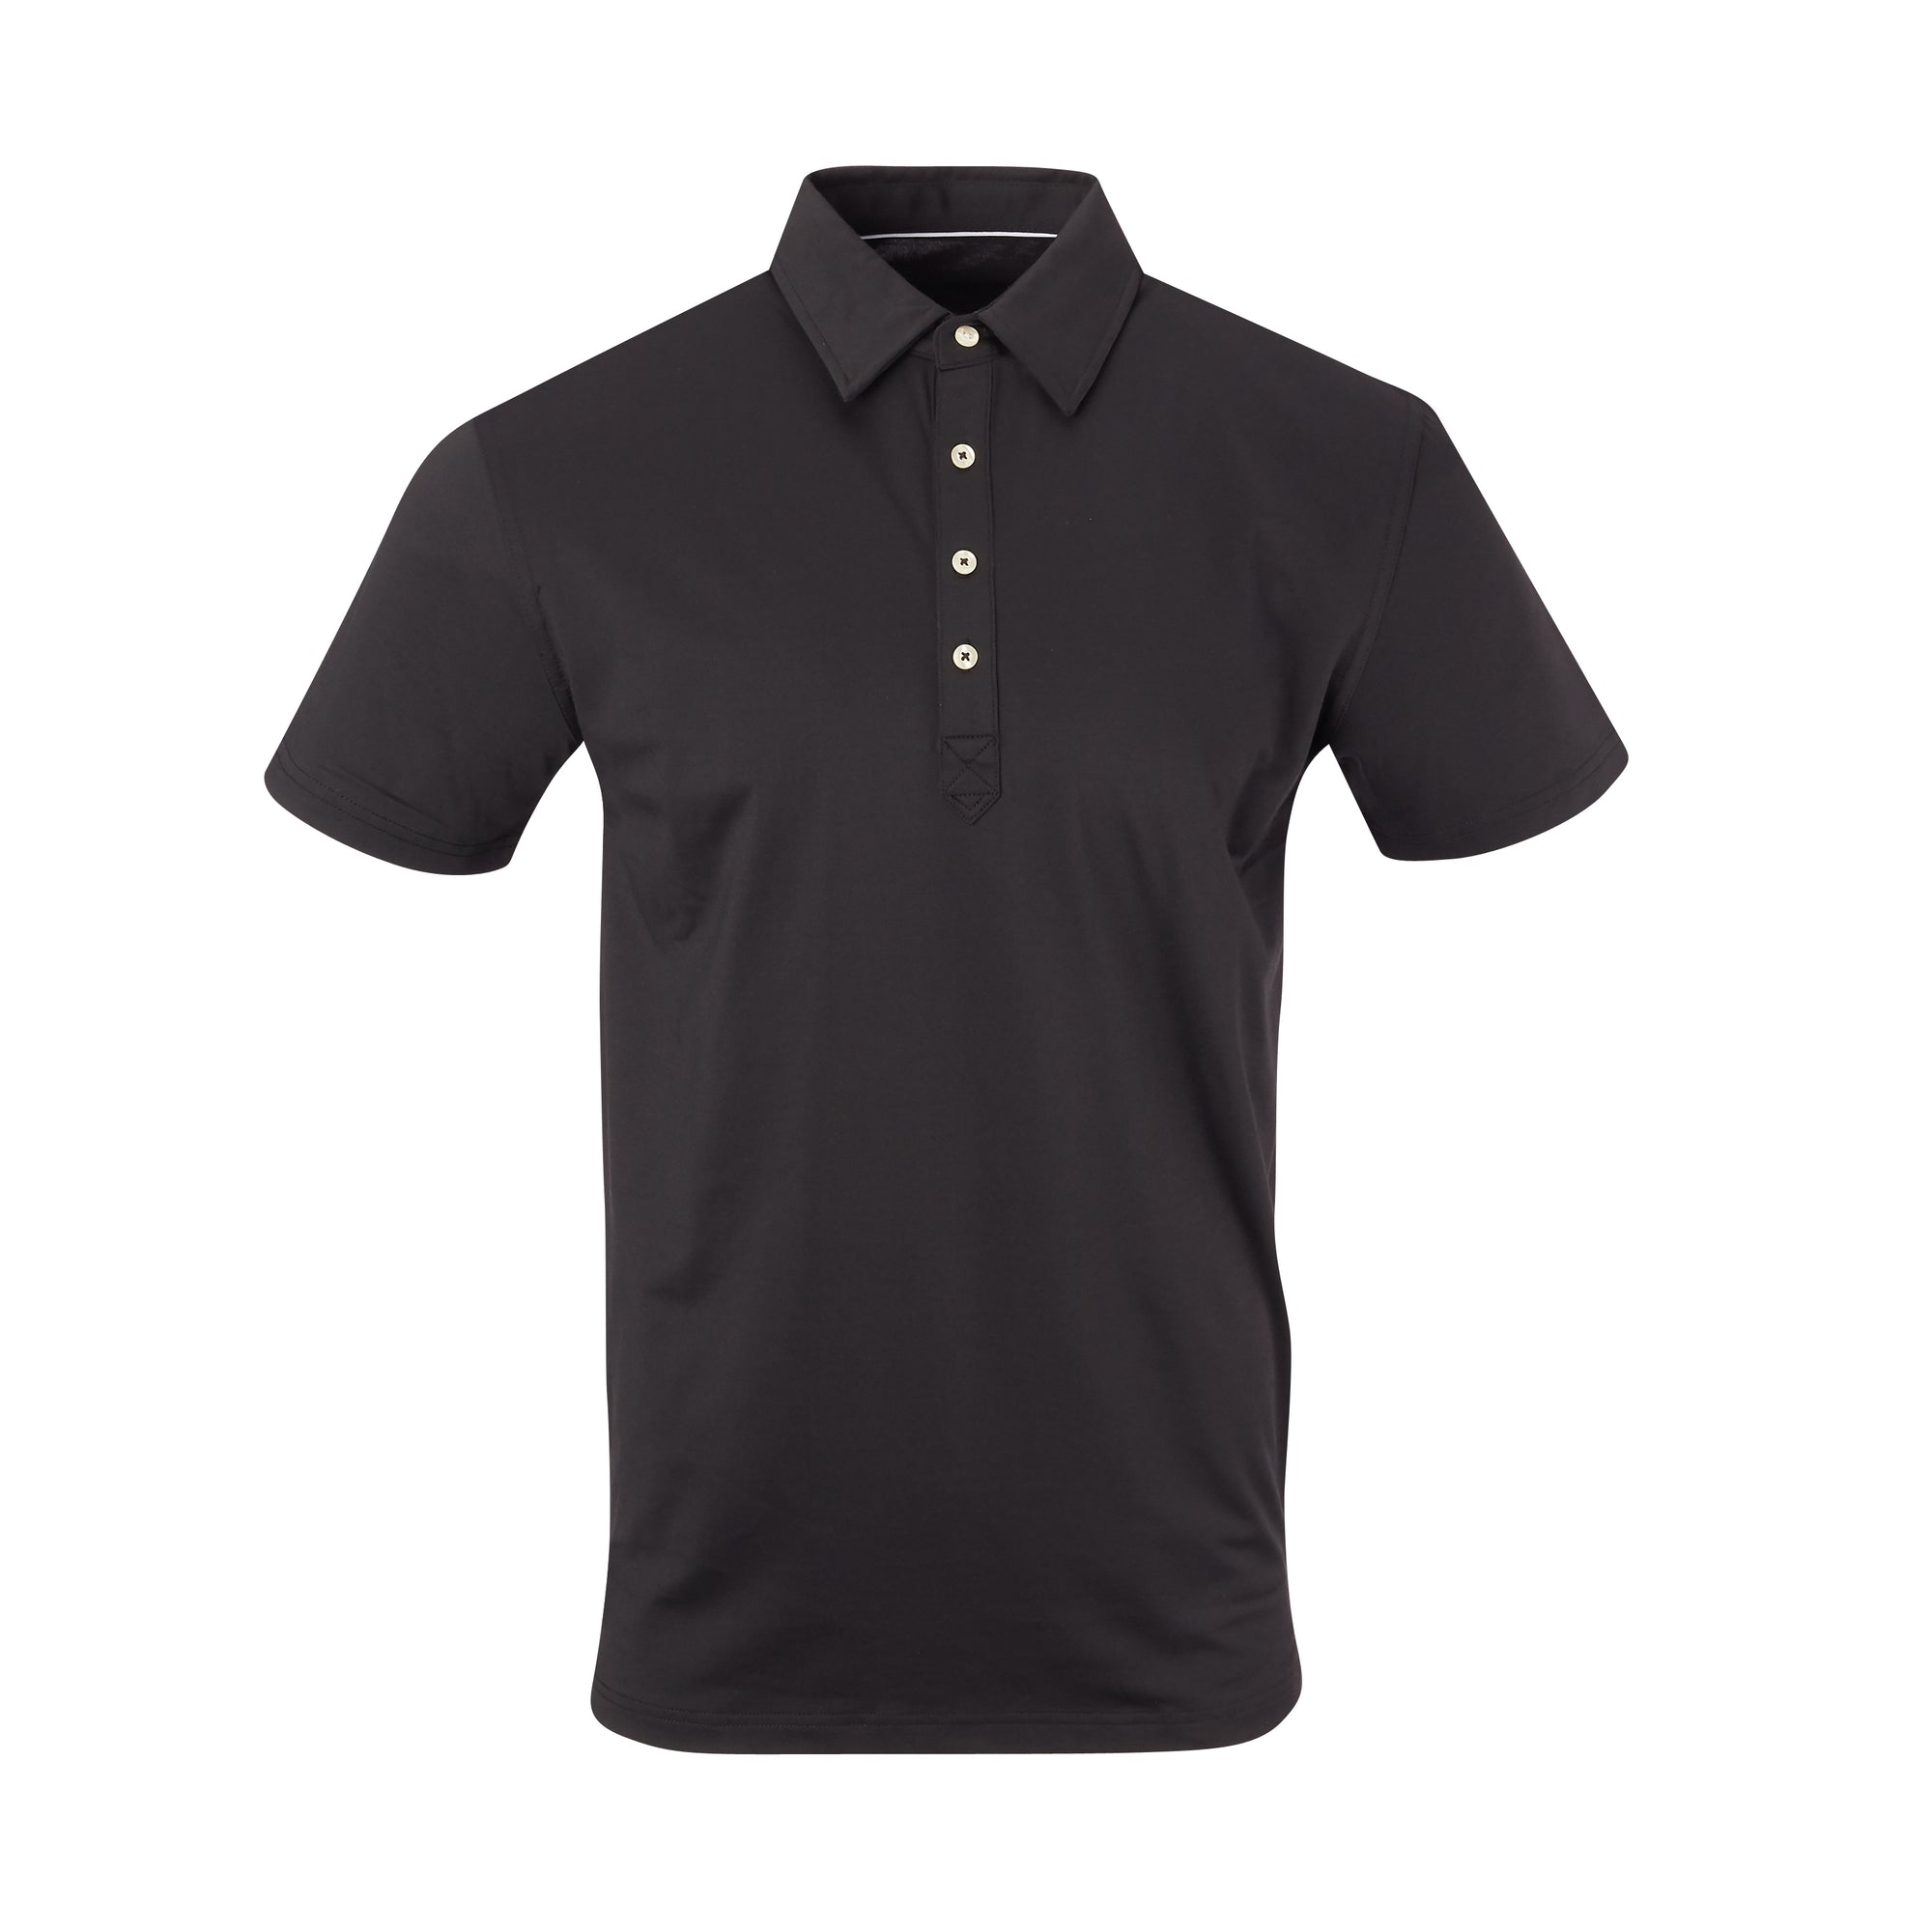 THE ARNIE LUXTEC POLO - Black IS72400